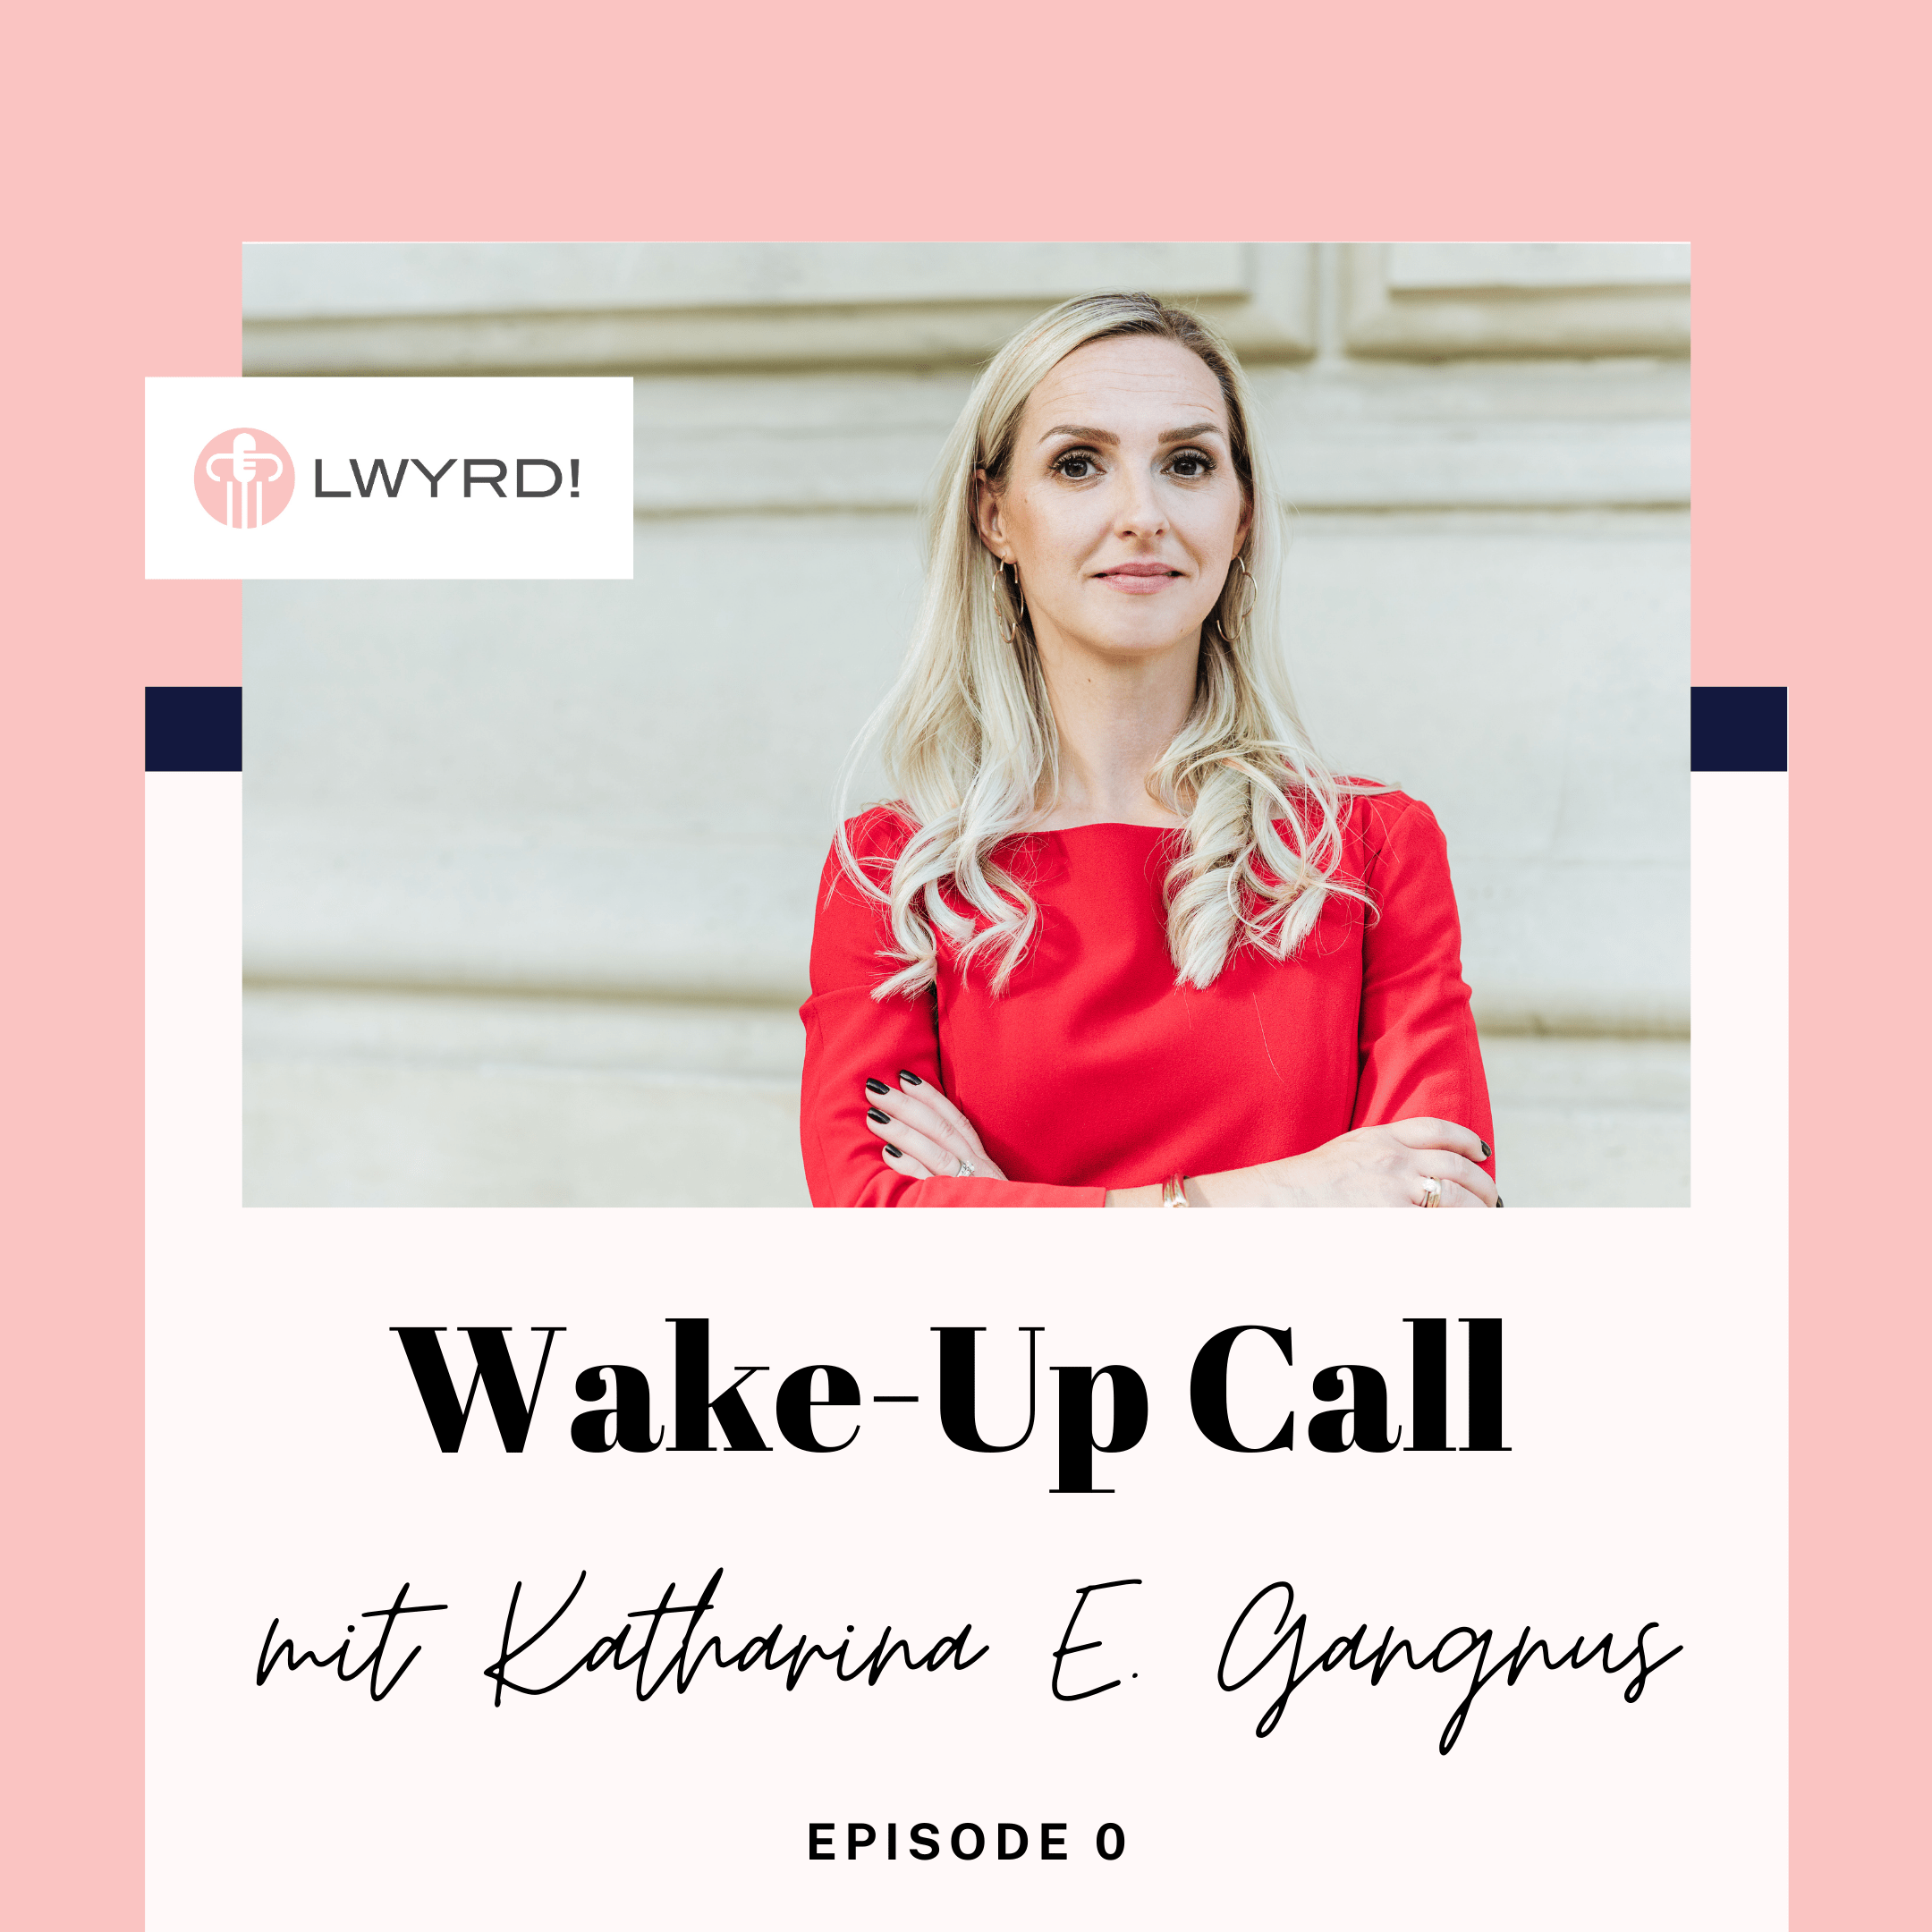 LWYRD! Wake-Up Call Episode 0